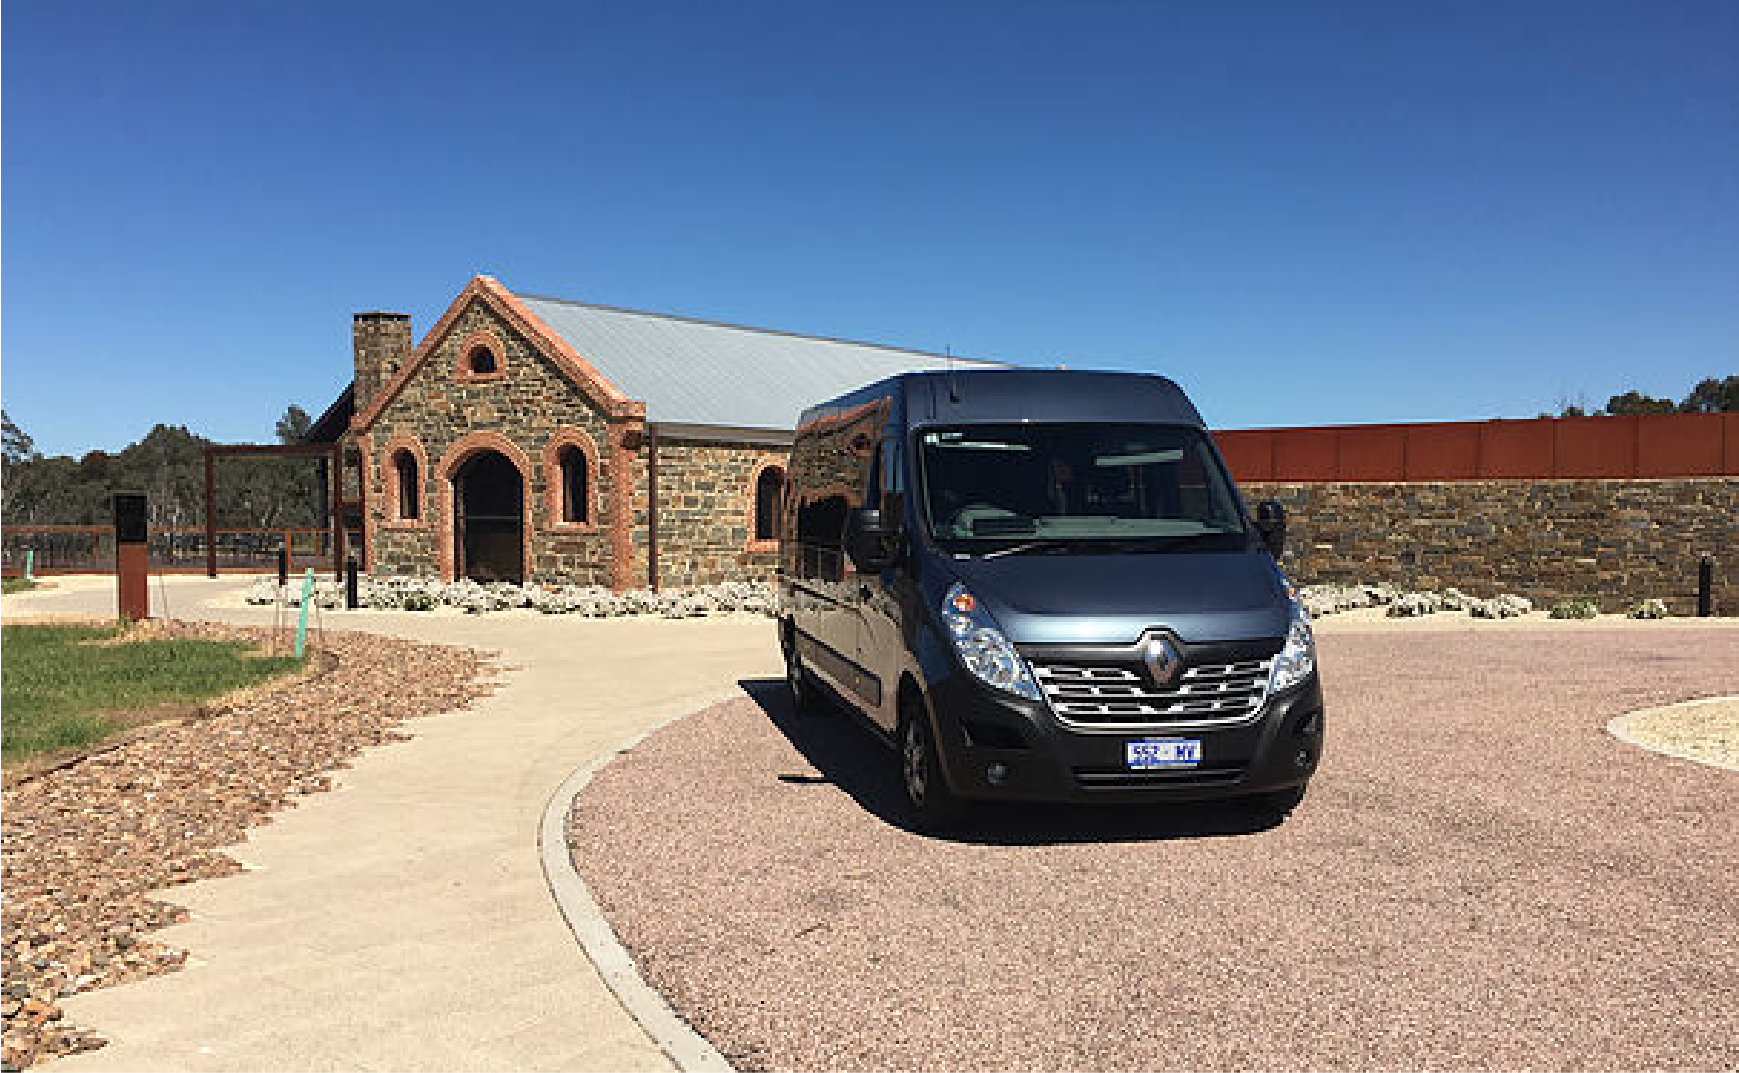 "<a href=""https://winevalleytours.com.au/barossa-valley-wine-tour-south-australia-tours/"">Barossa Valley Wine tour</a>"